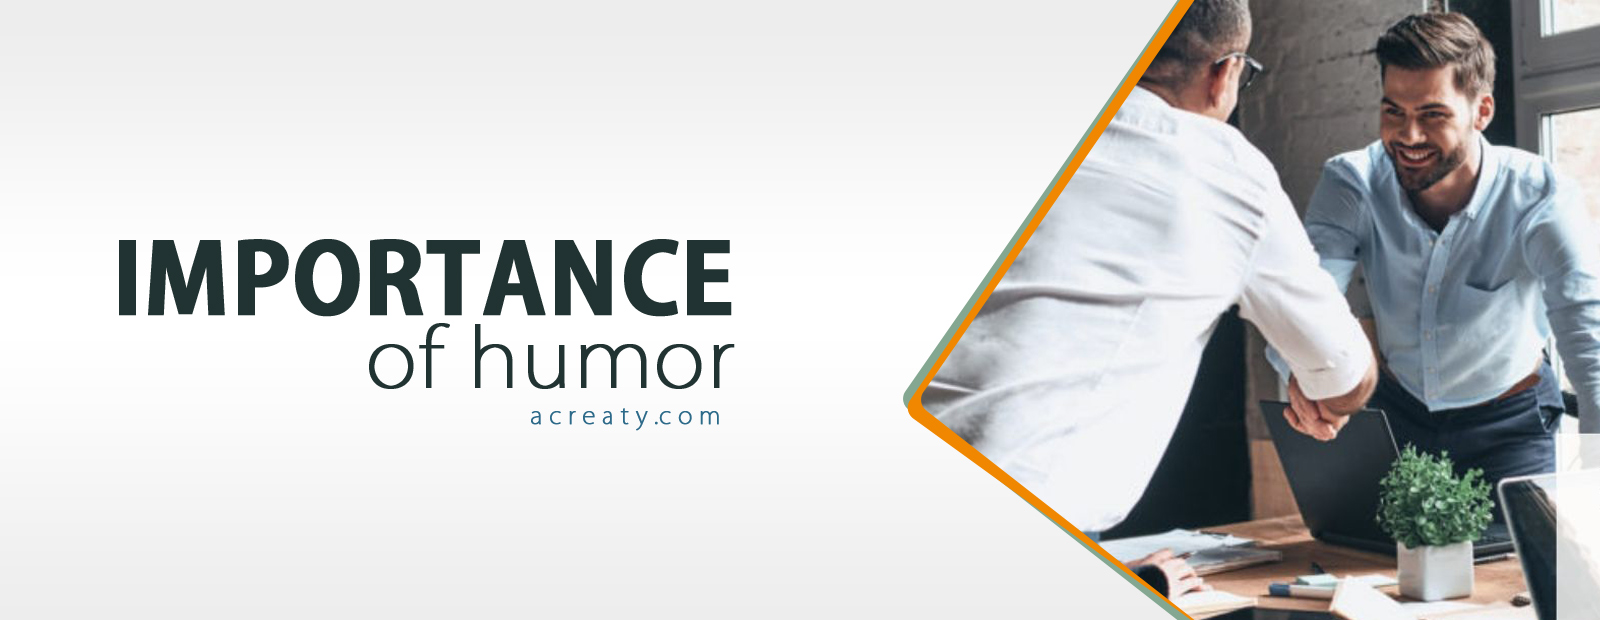 Humor and its significance in company culture